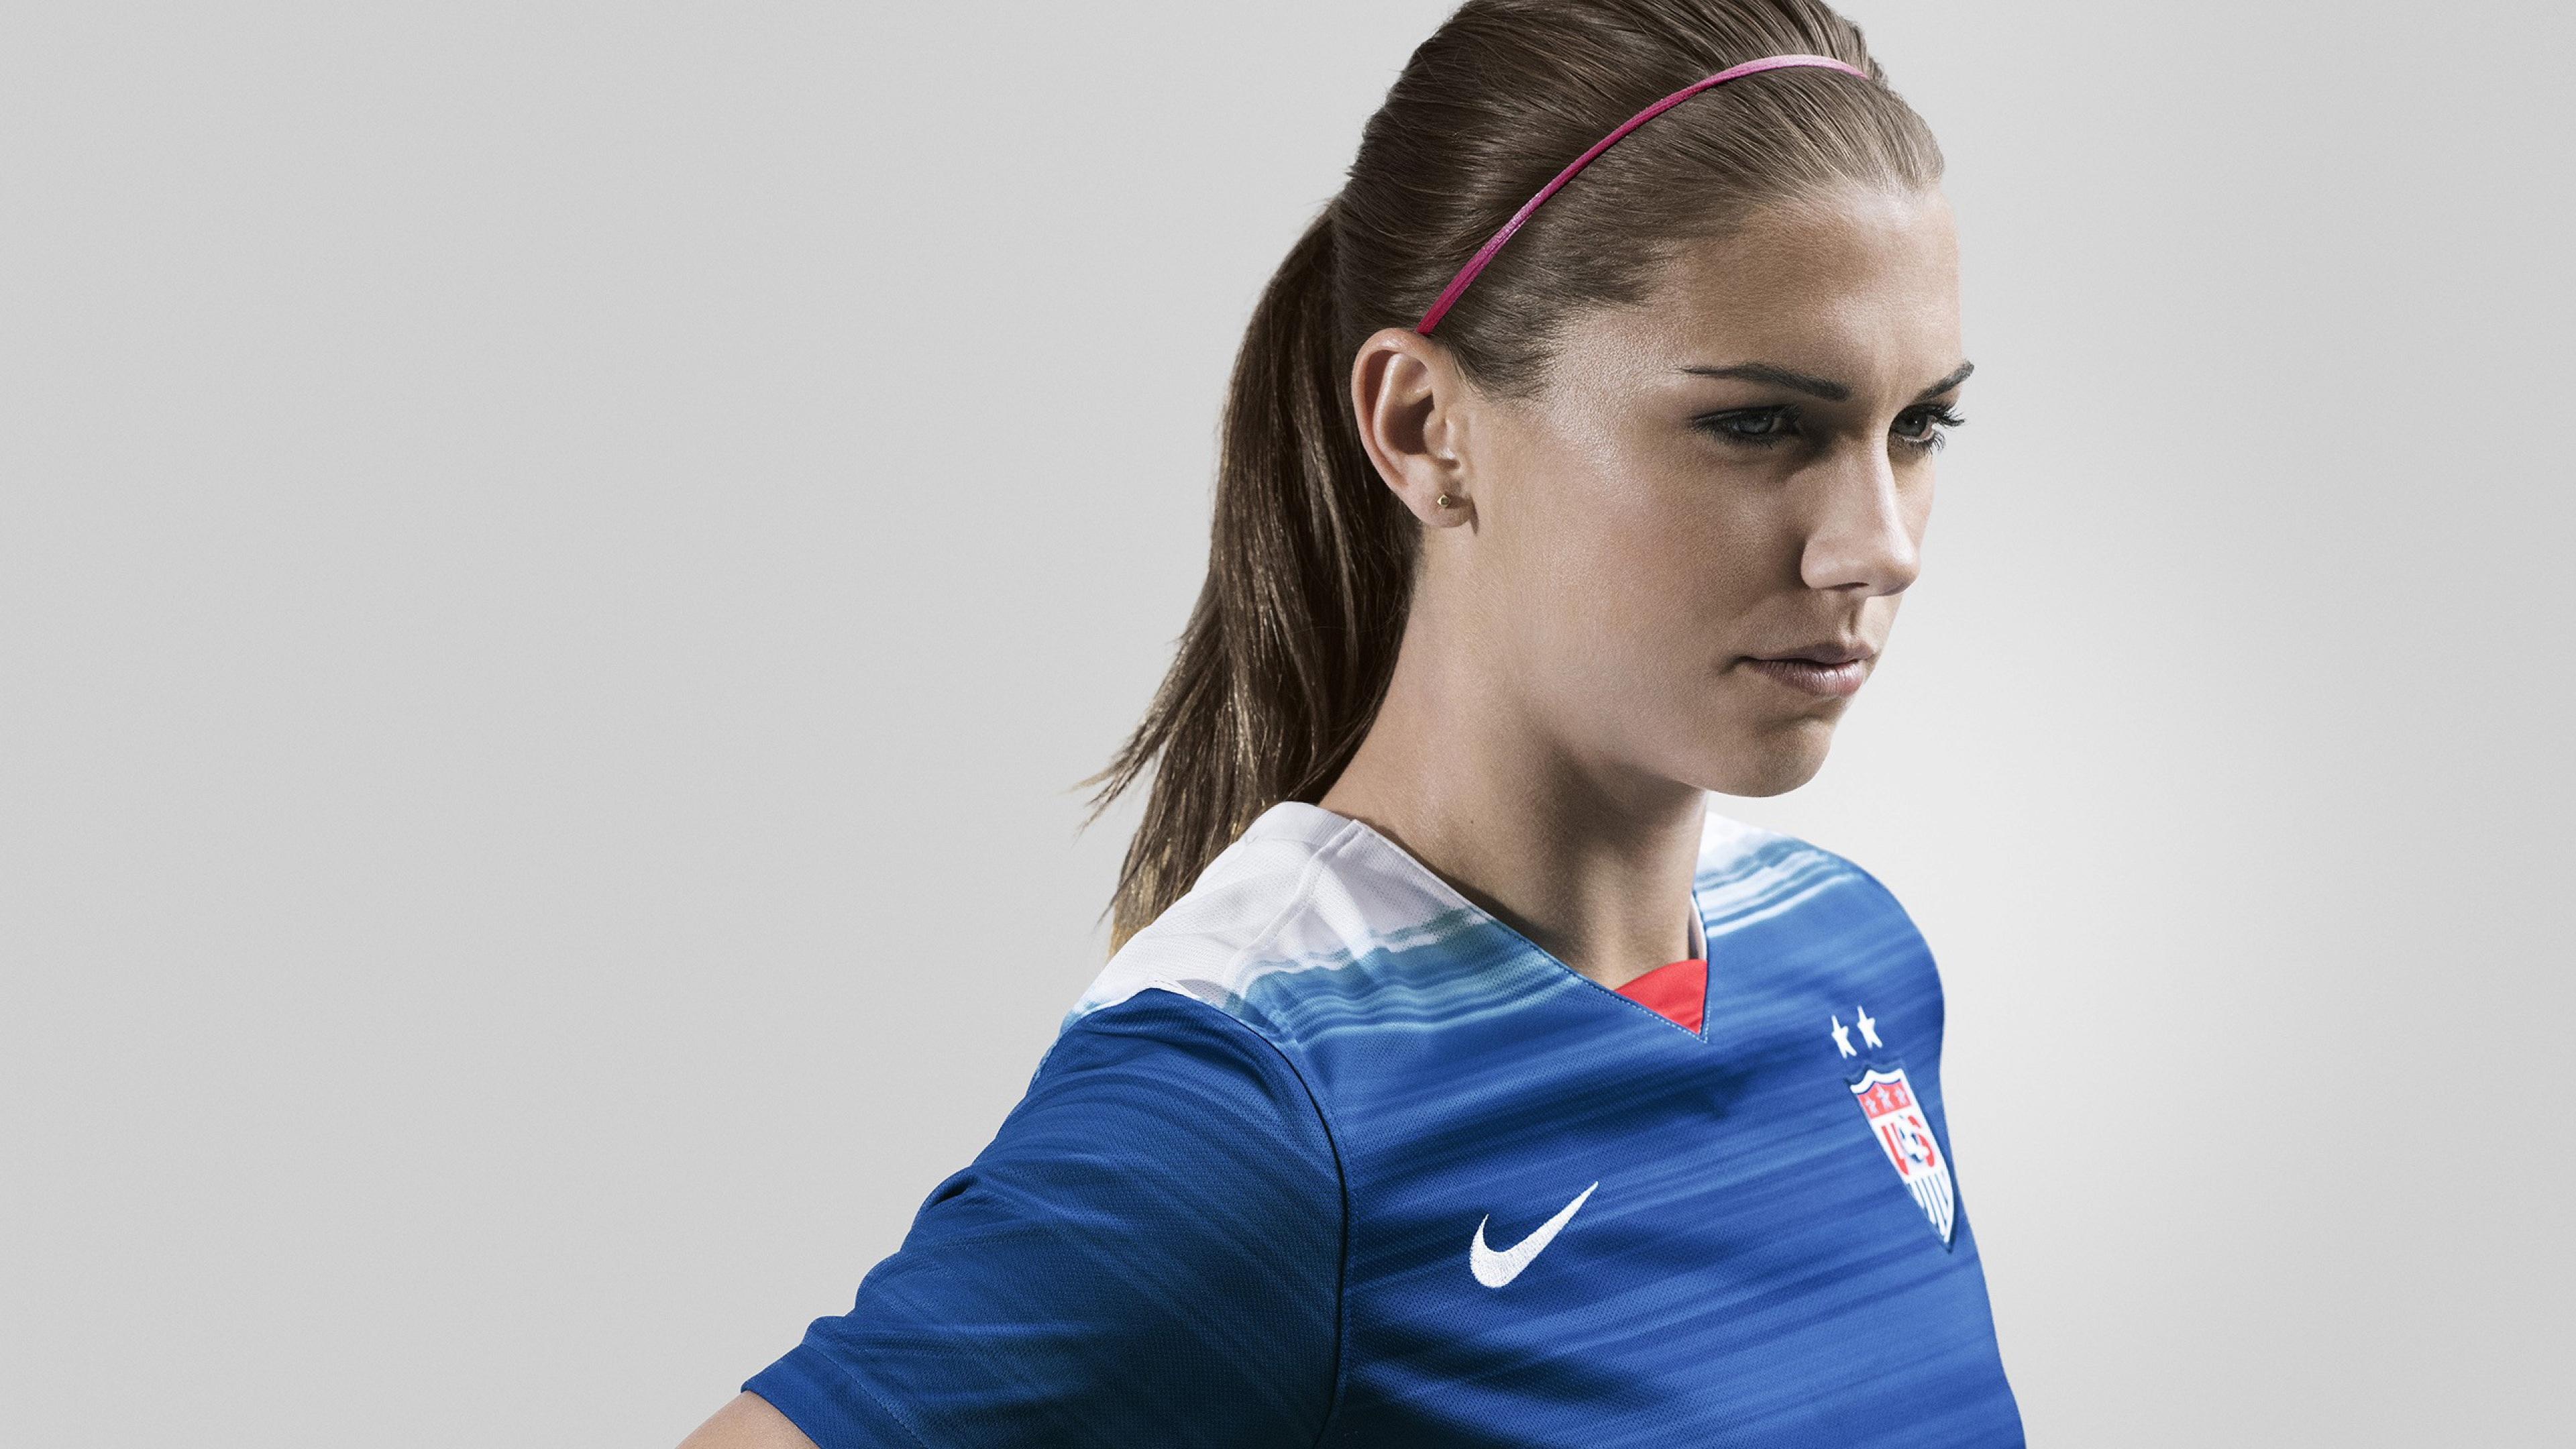 Alex Morgan Wallpapers Images Photos Pictures Backgrounds